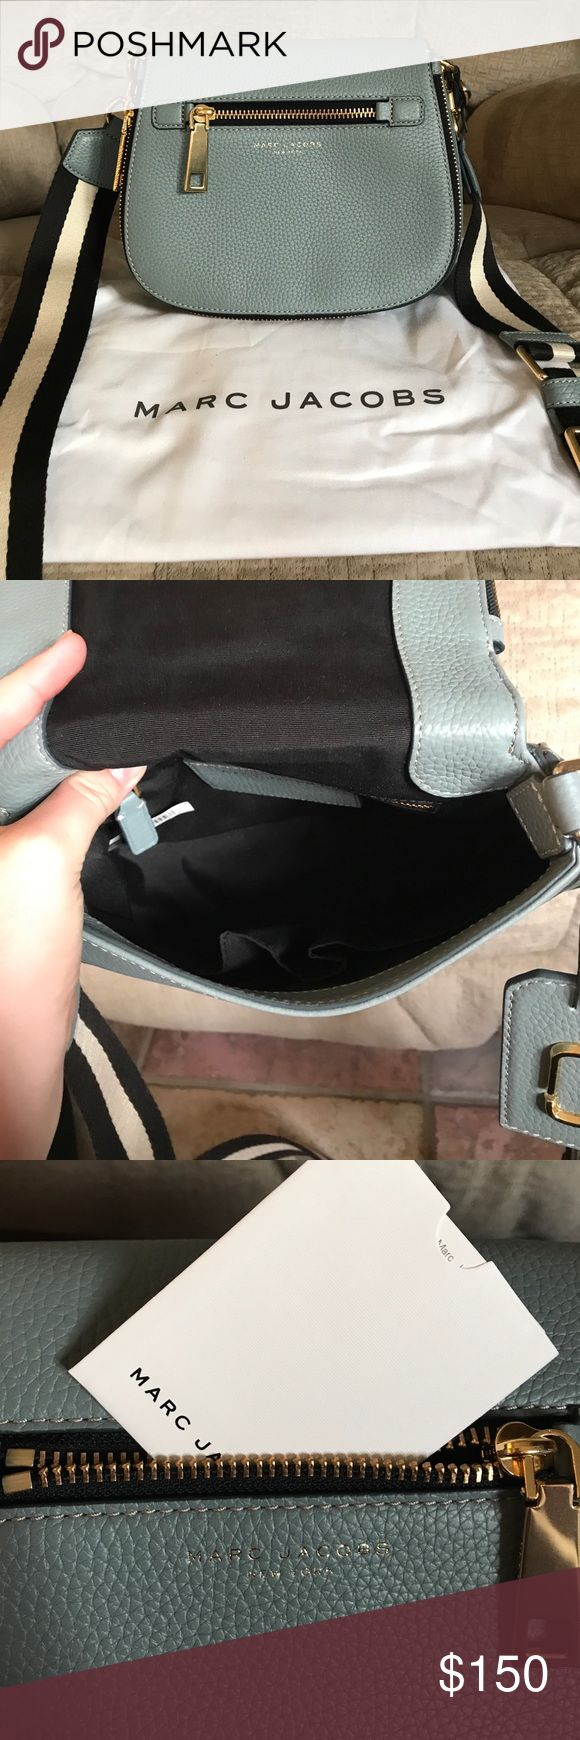 Marc Jacobs Purse Beautiful small Marc Jacobs Purse. Used once. Care instructions, duster bag included. Marc Jacobs Bags Crossbody Bags